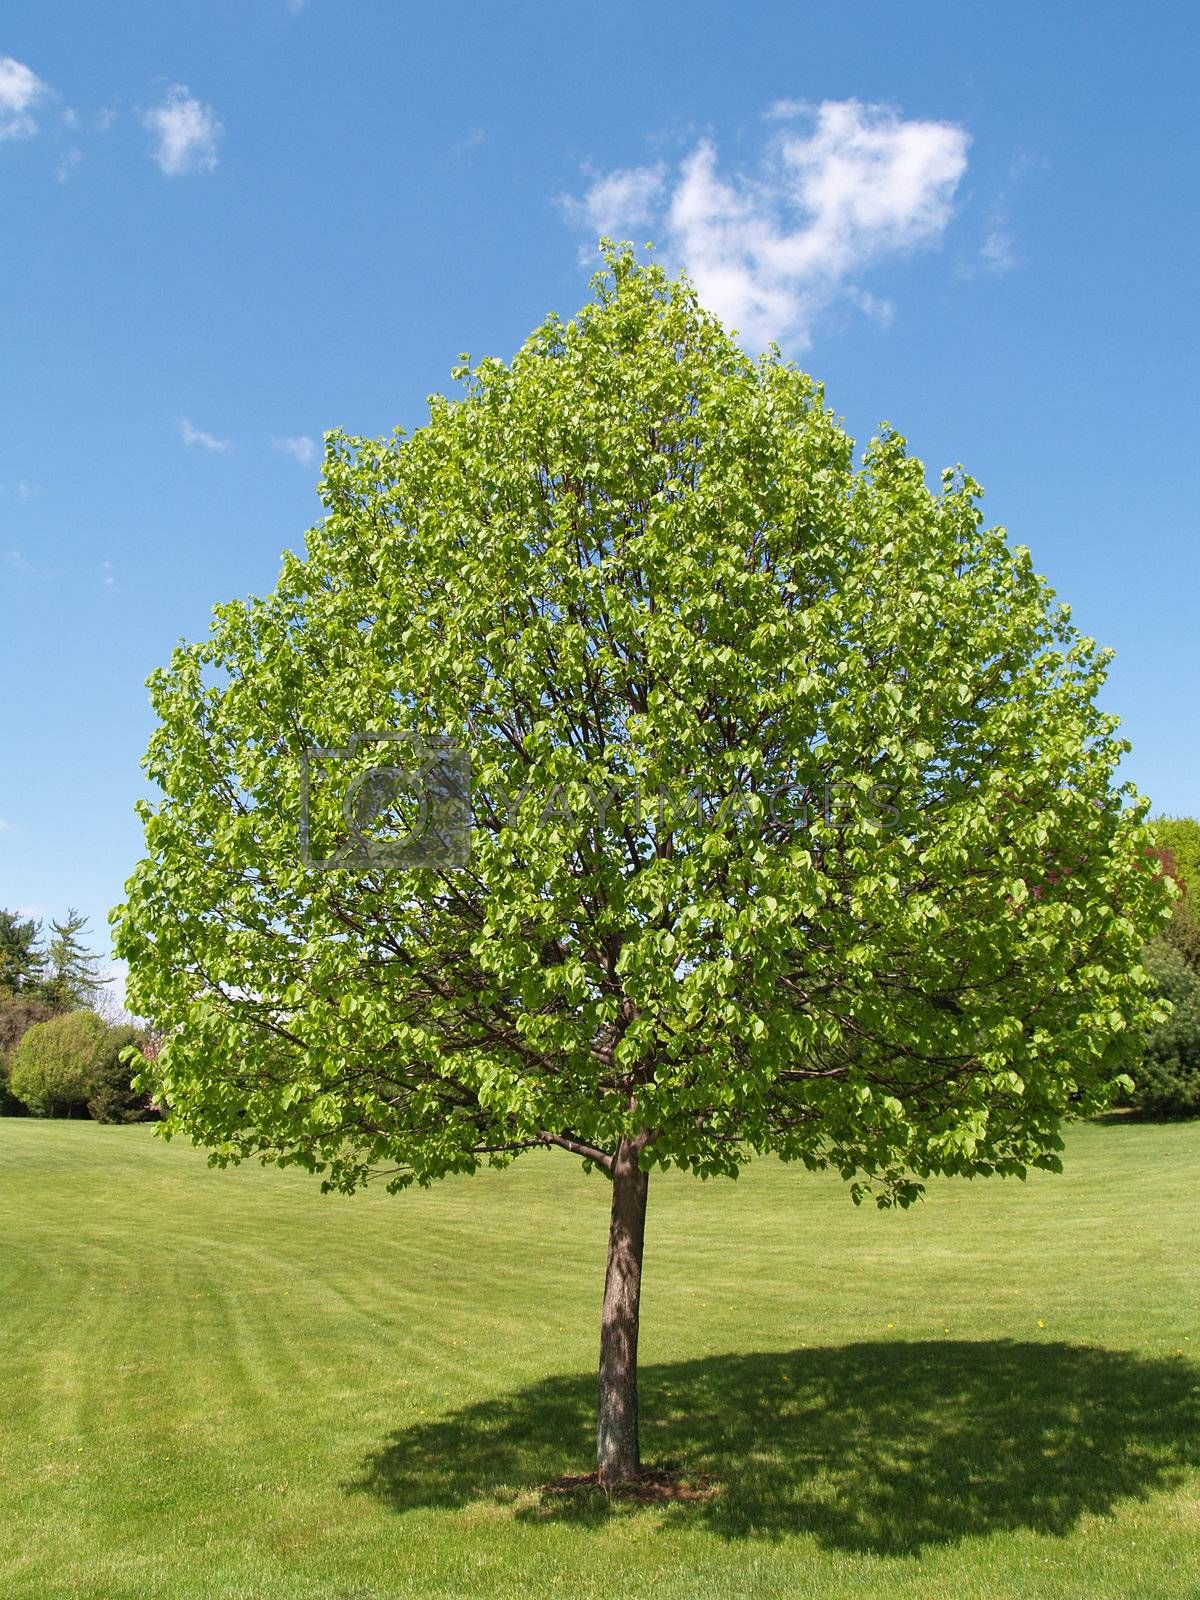 One tree with leaves by a green lawn with a blue sky in the background.